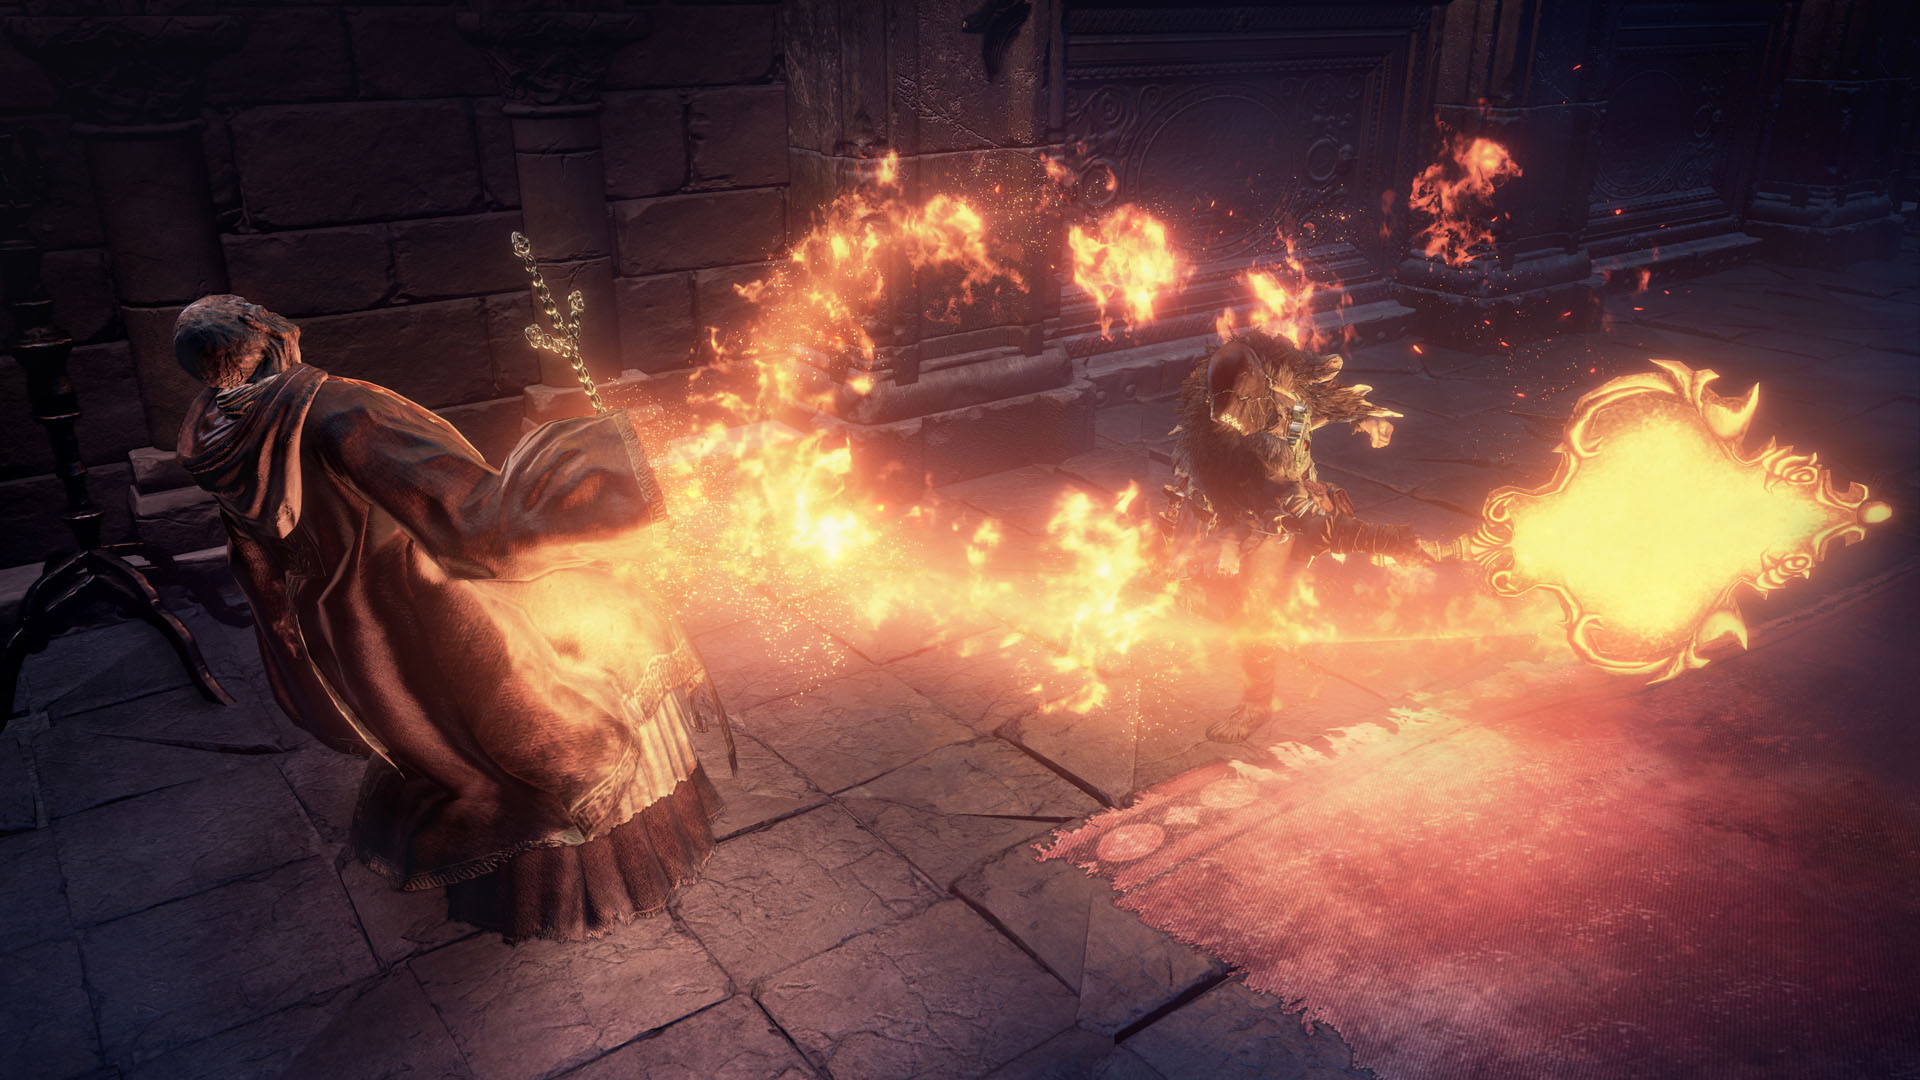 download dark souls 3 cracked by codex include all dlc and latest update mirrorace multiup